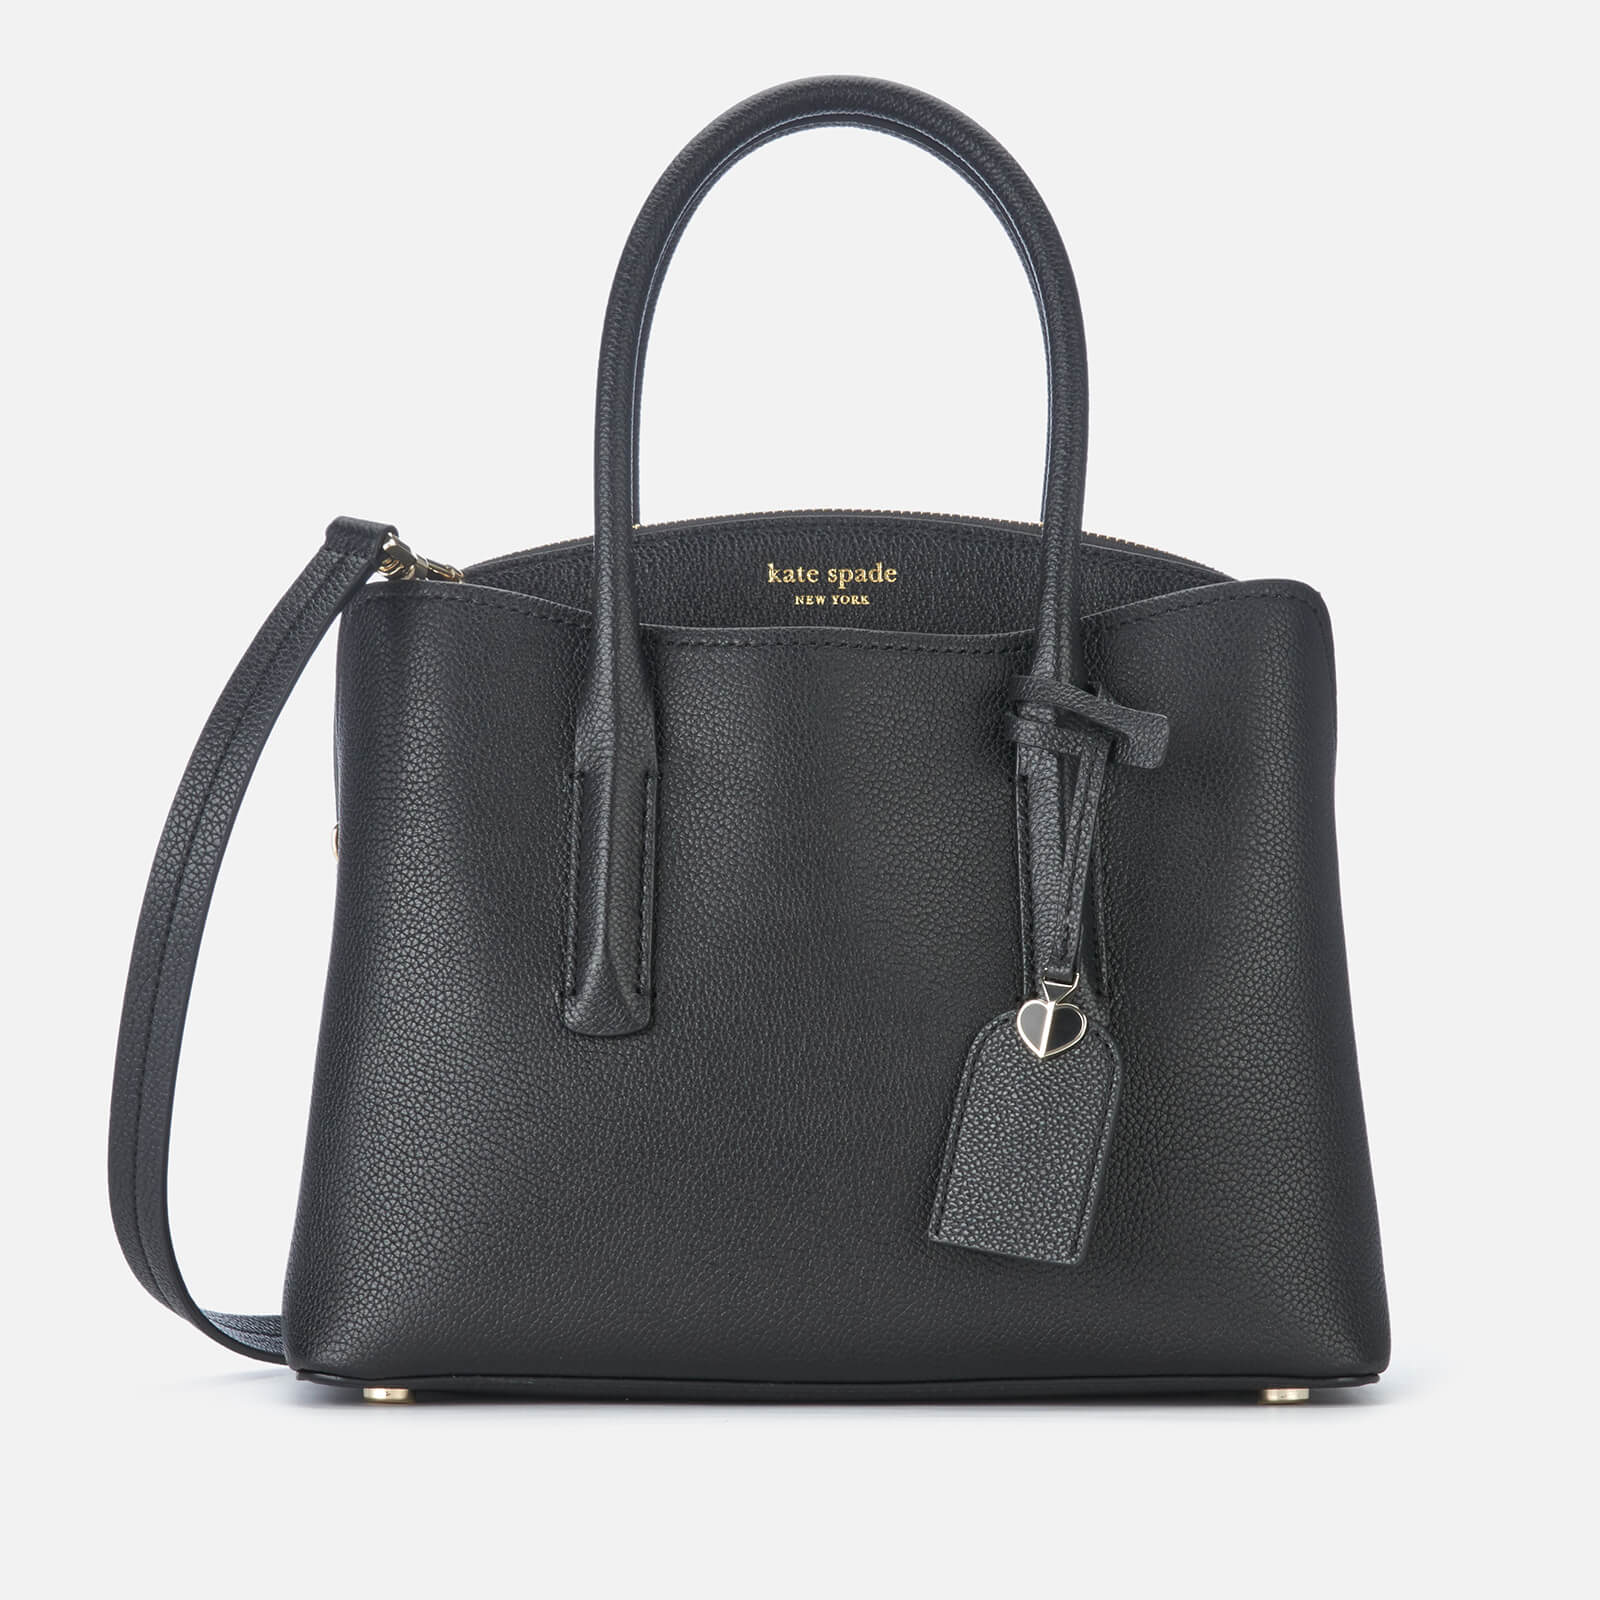 Kate Spade New York Women's Margaux Medium Satchel - Black